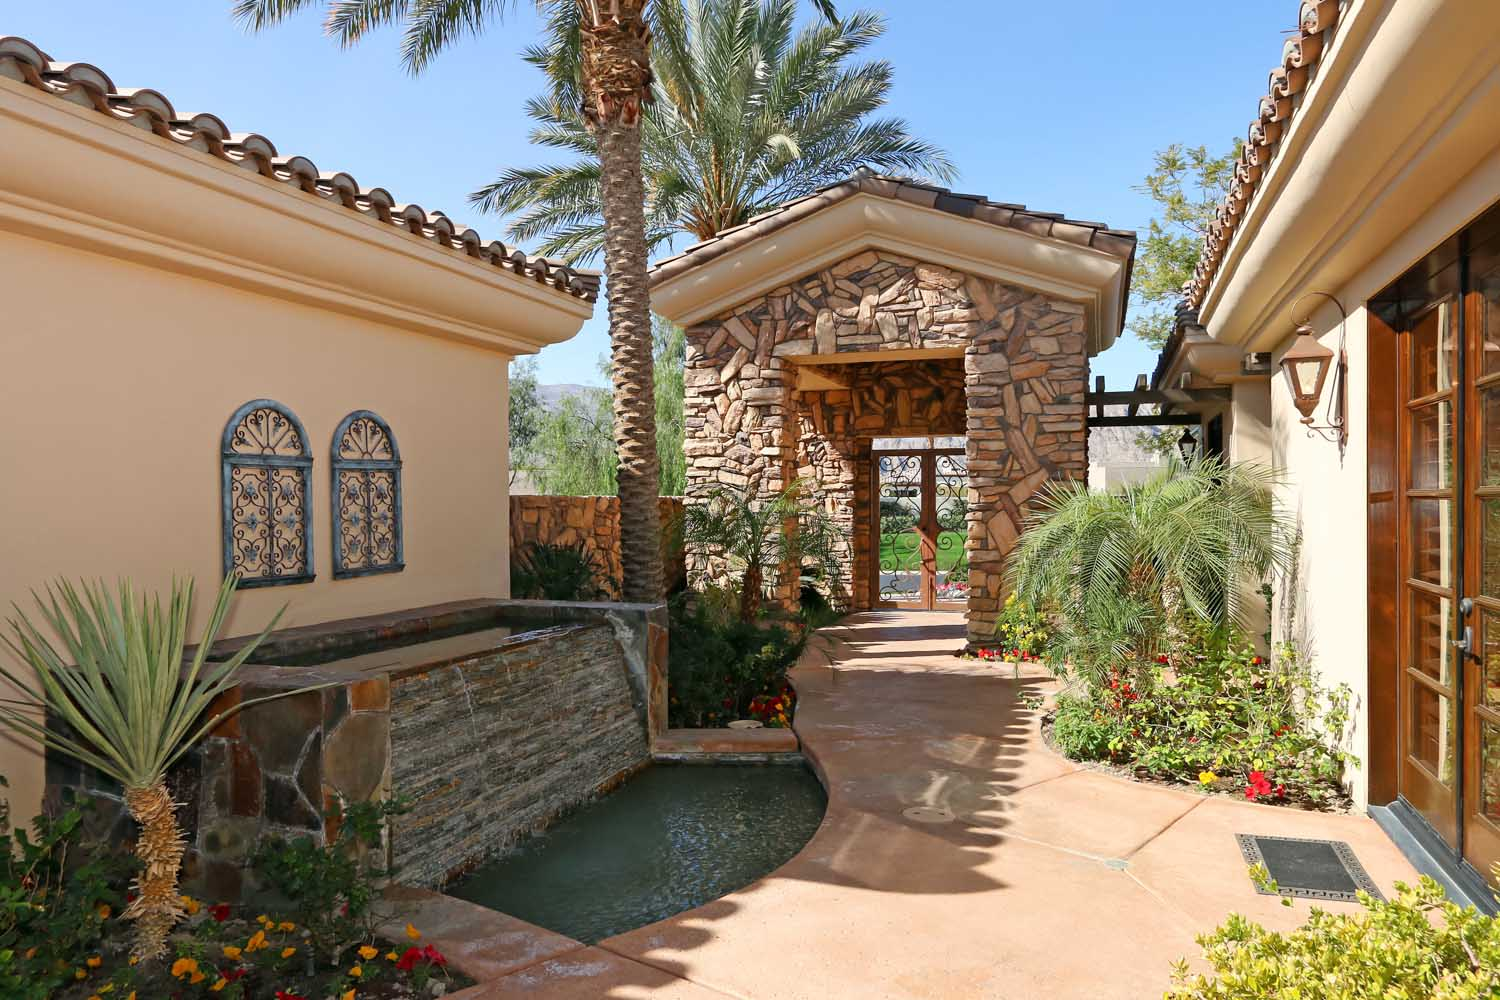 Home For Sale | Palm Desert Area